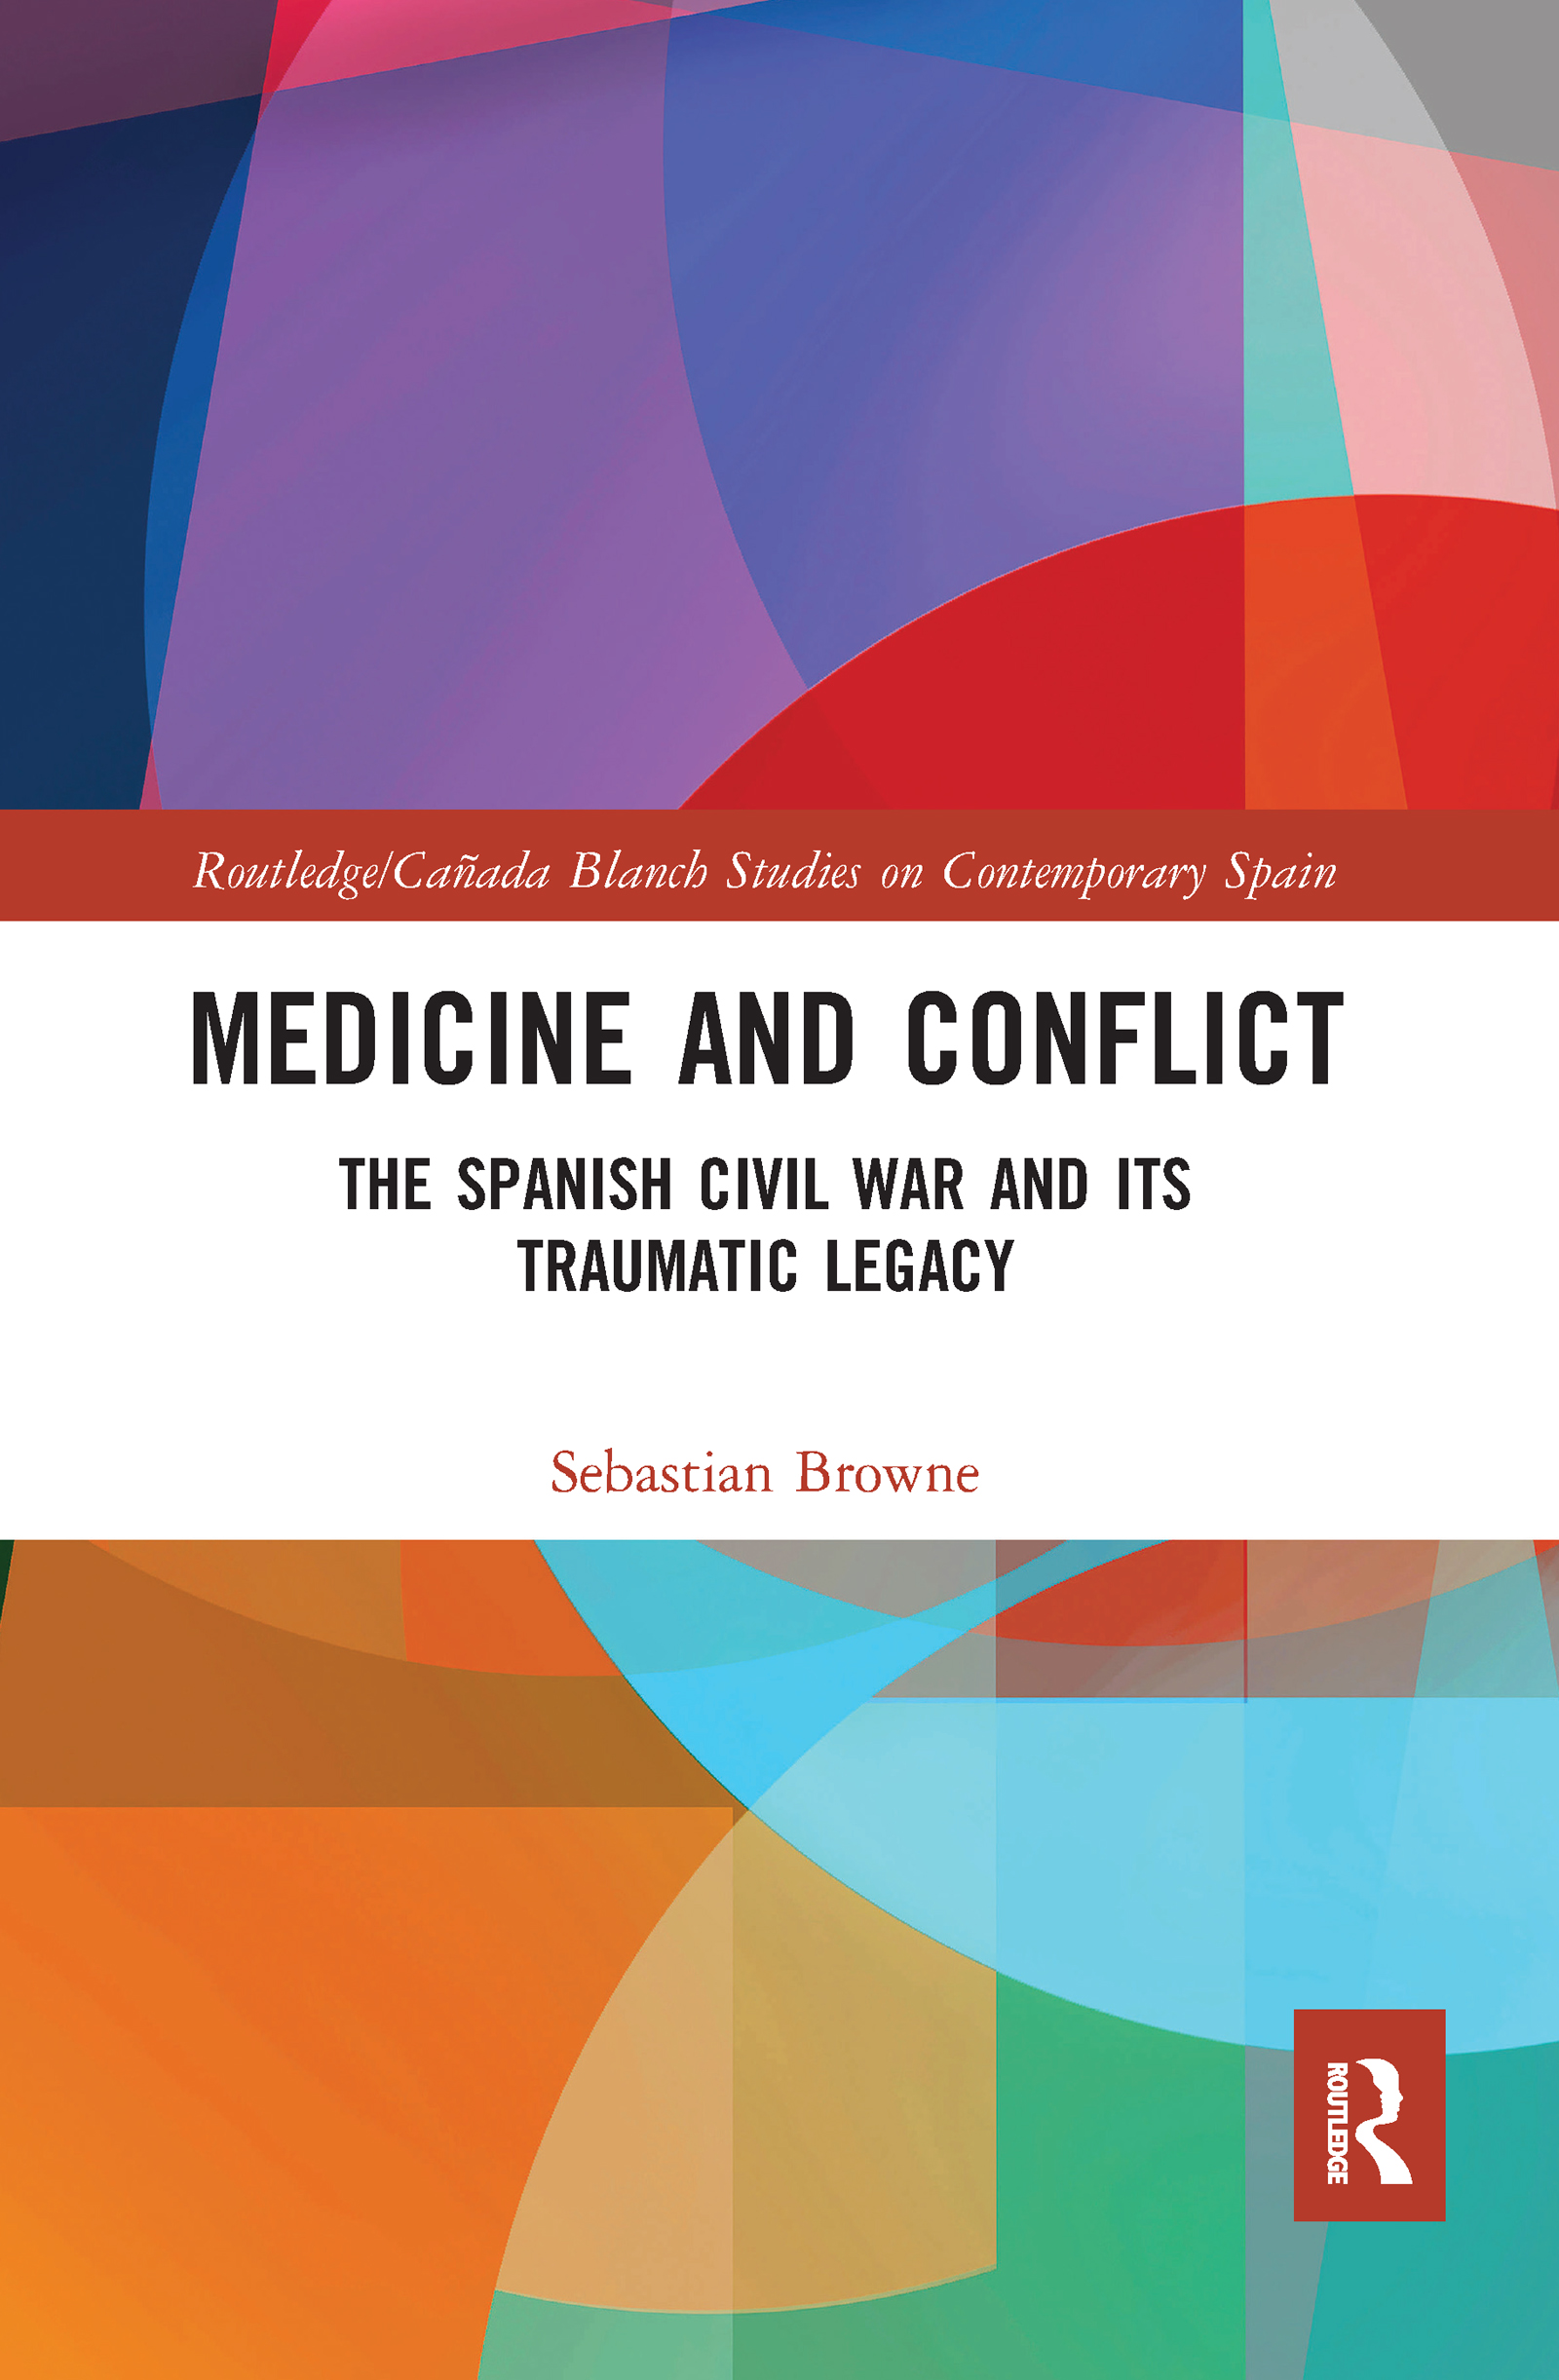 Medicine and Conflict